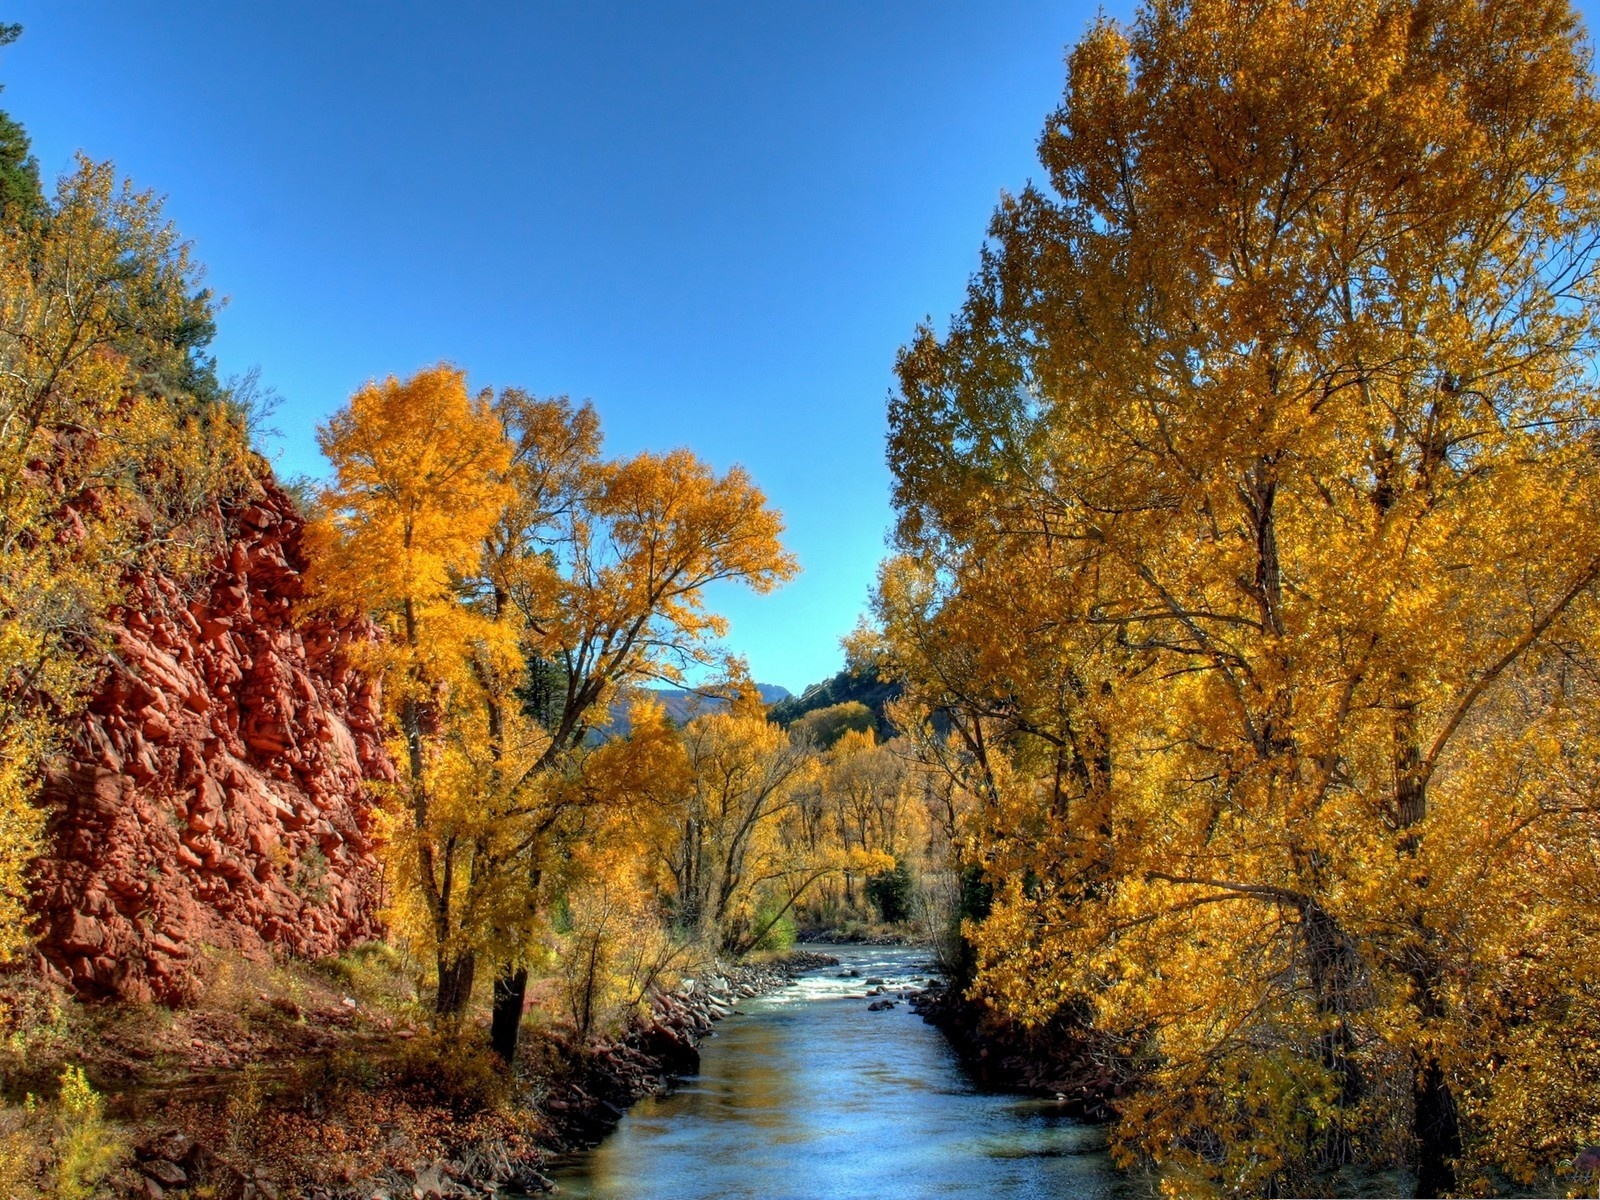 click to free download the wallpaper--Nature and Trees, Brown Trees Alongside the River, Autumn Scenery 1600X1200 free wallpaper download